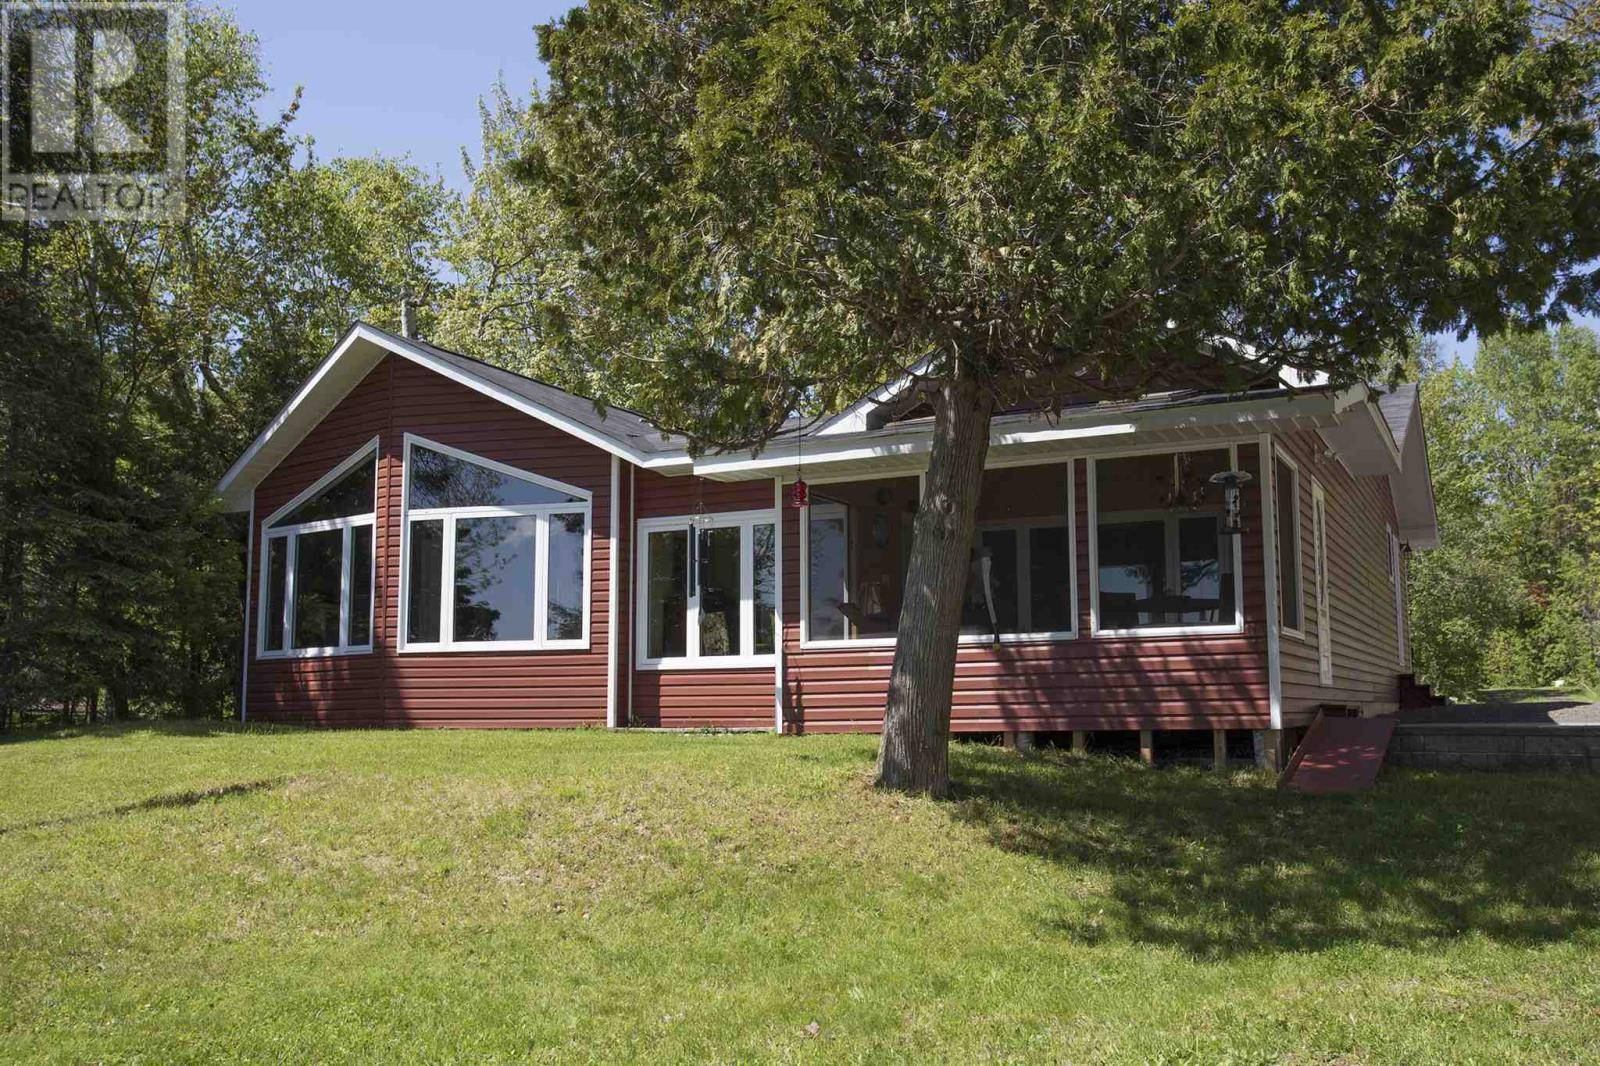 House for sale at 302 Waltonen Rd Bruce Mines Ontario - MLS: SM125872